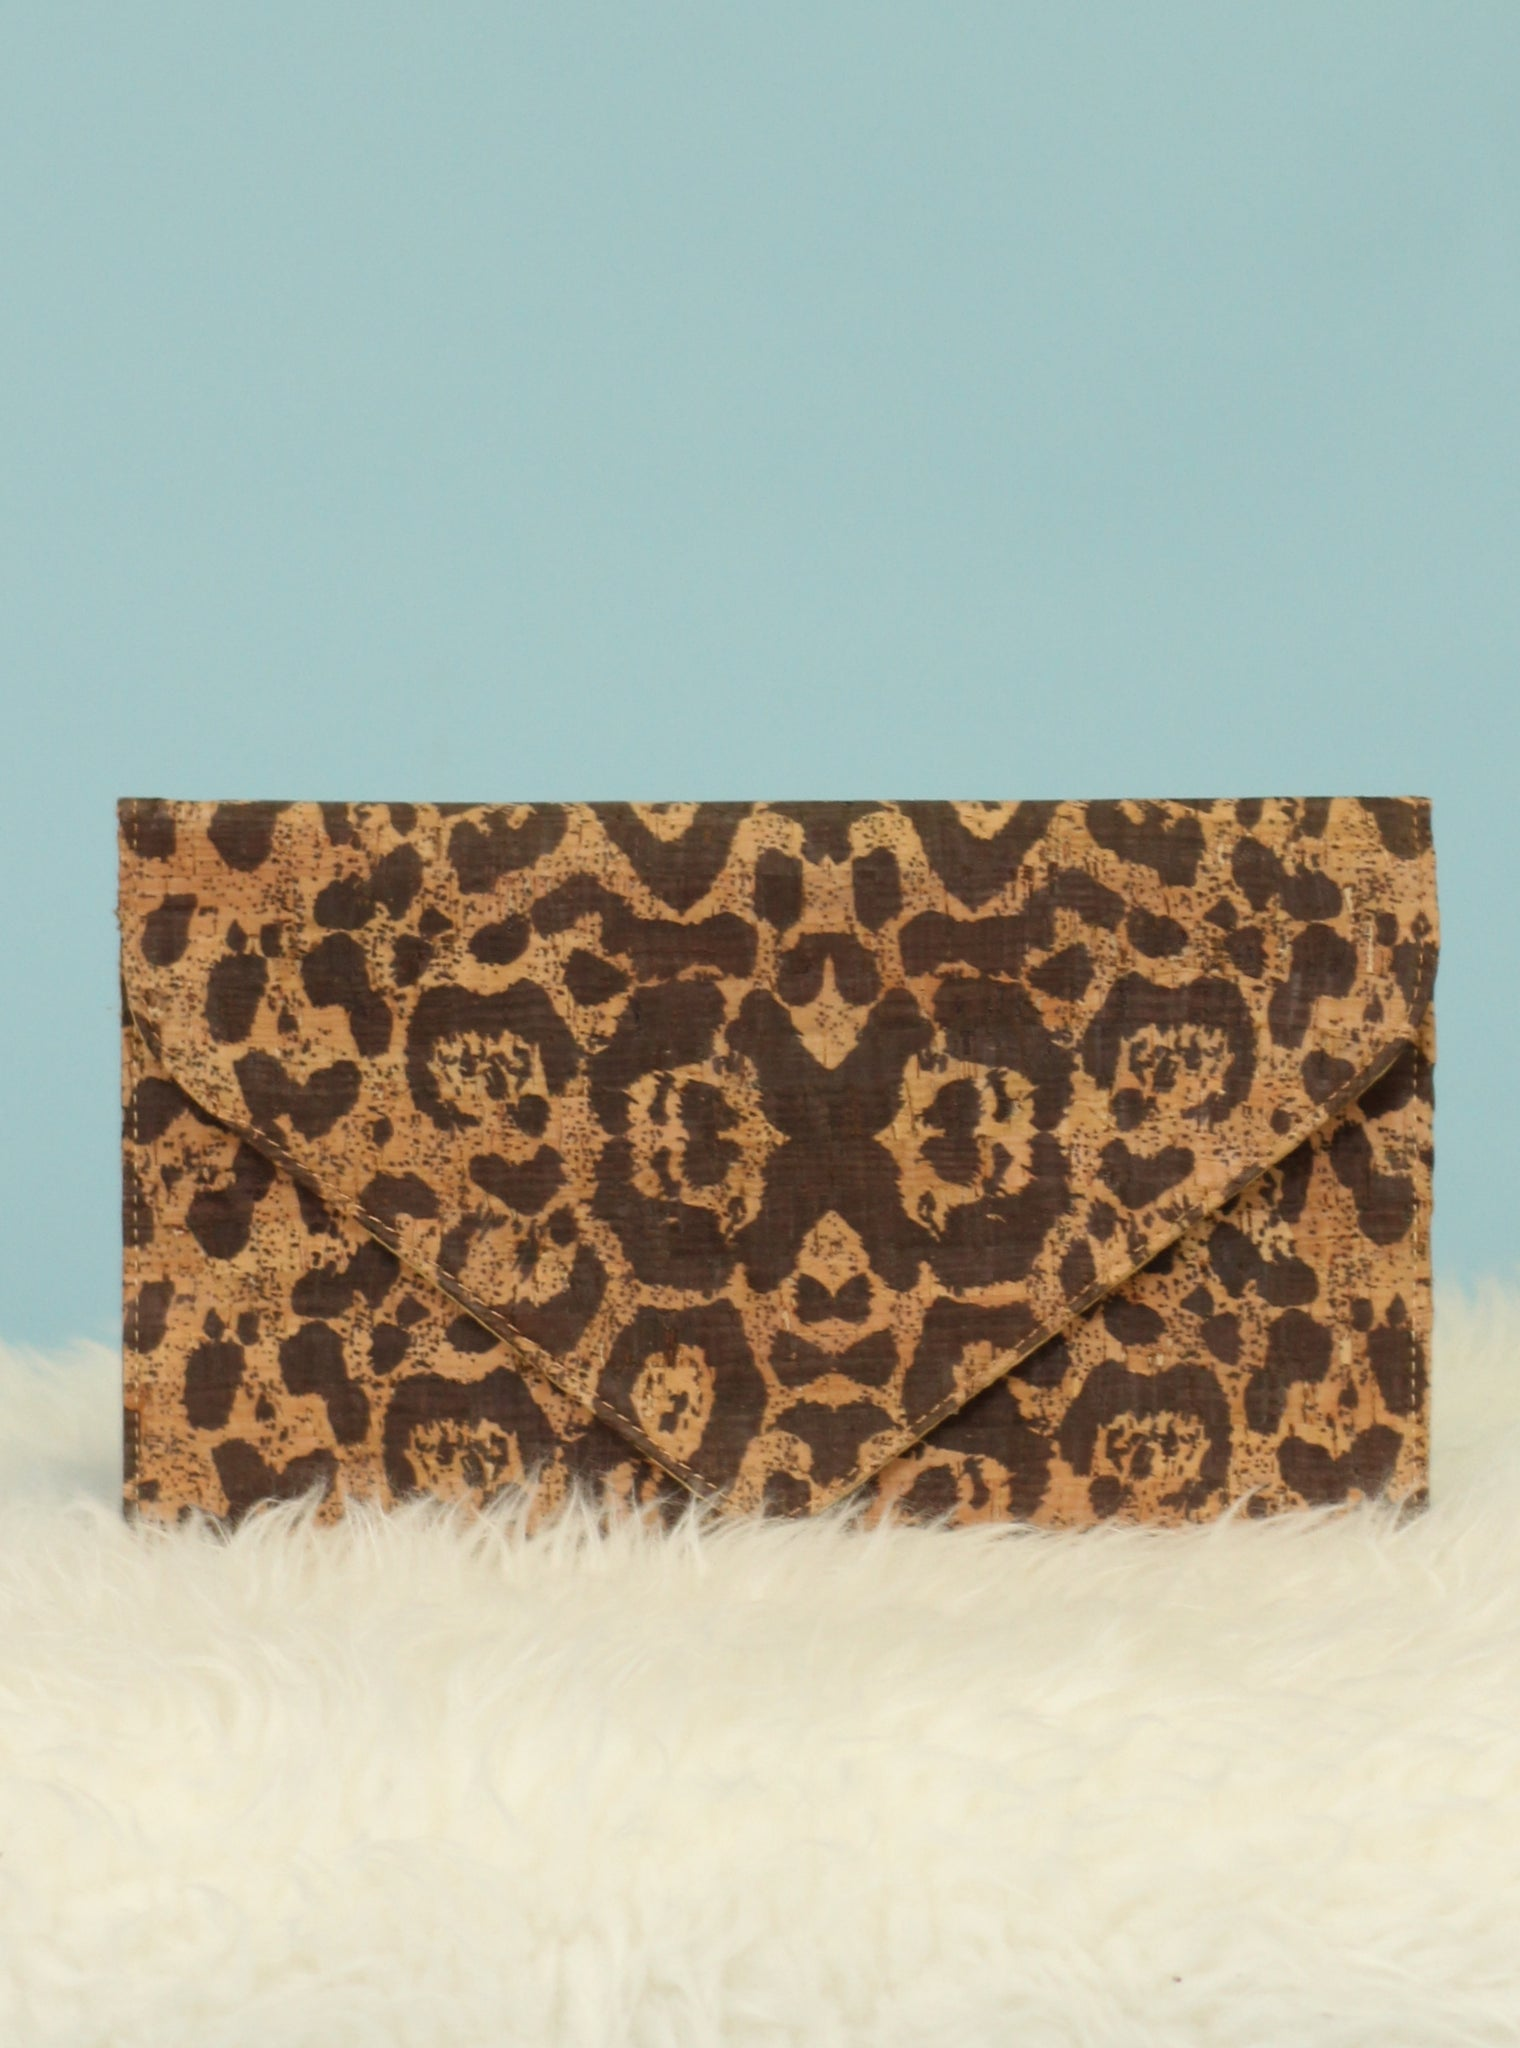 The Wild Woman Clutch